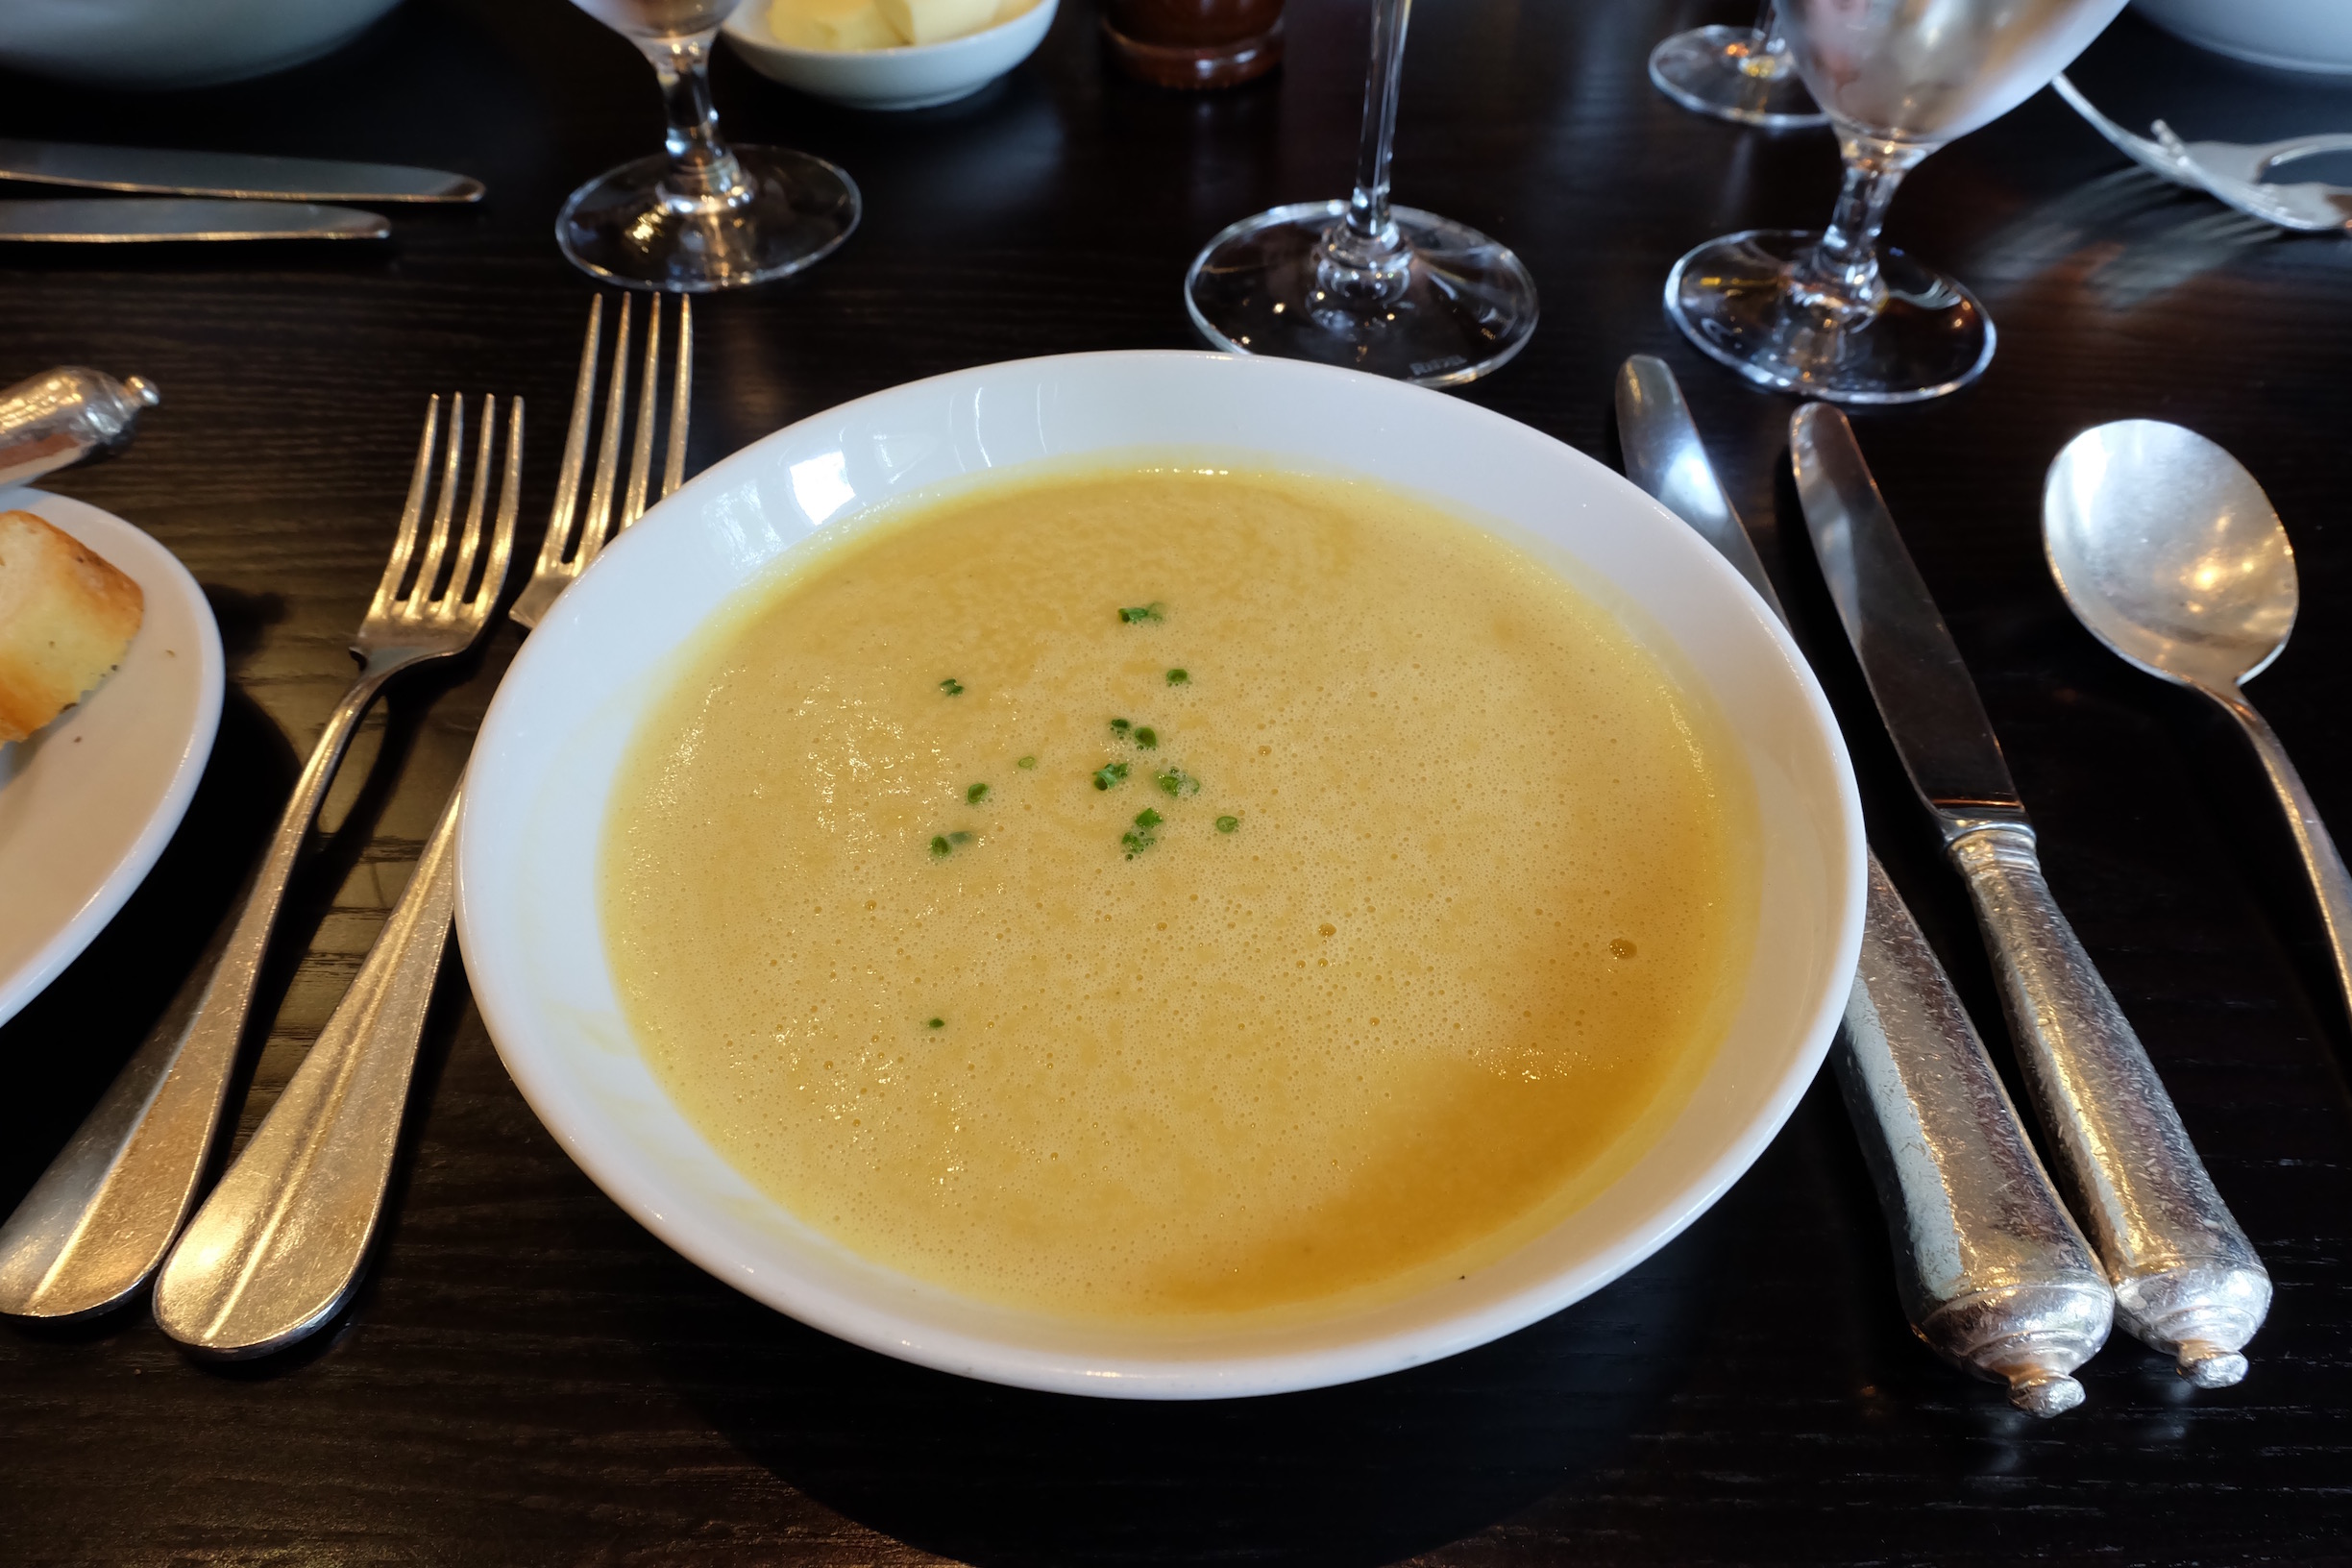 Course 1: Lentil Soup at Hotel du Vin in Glasgow